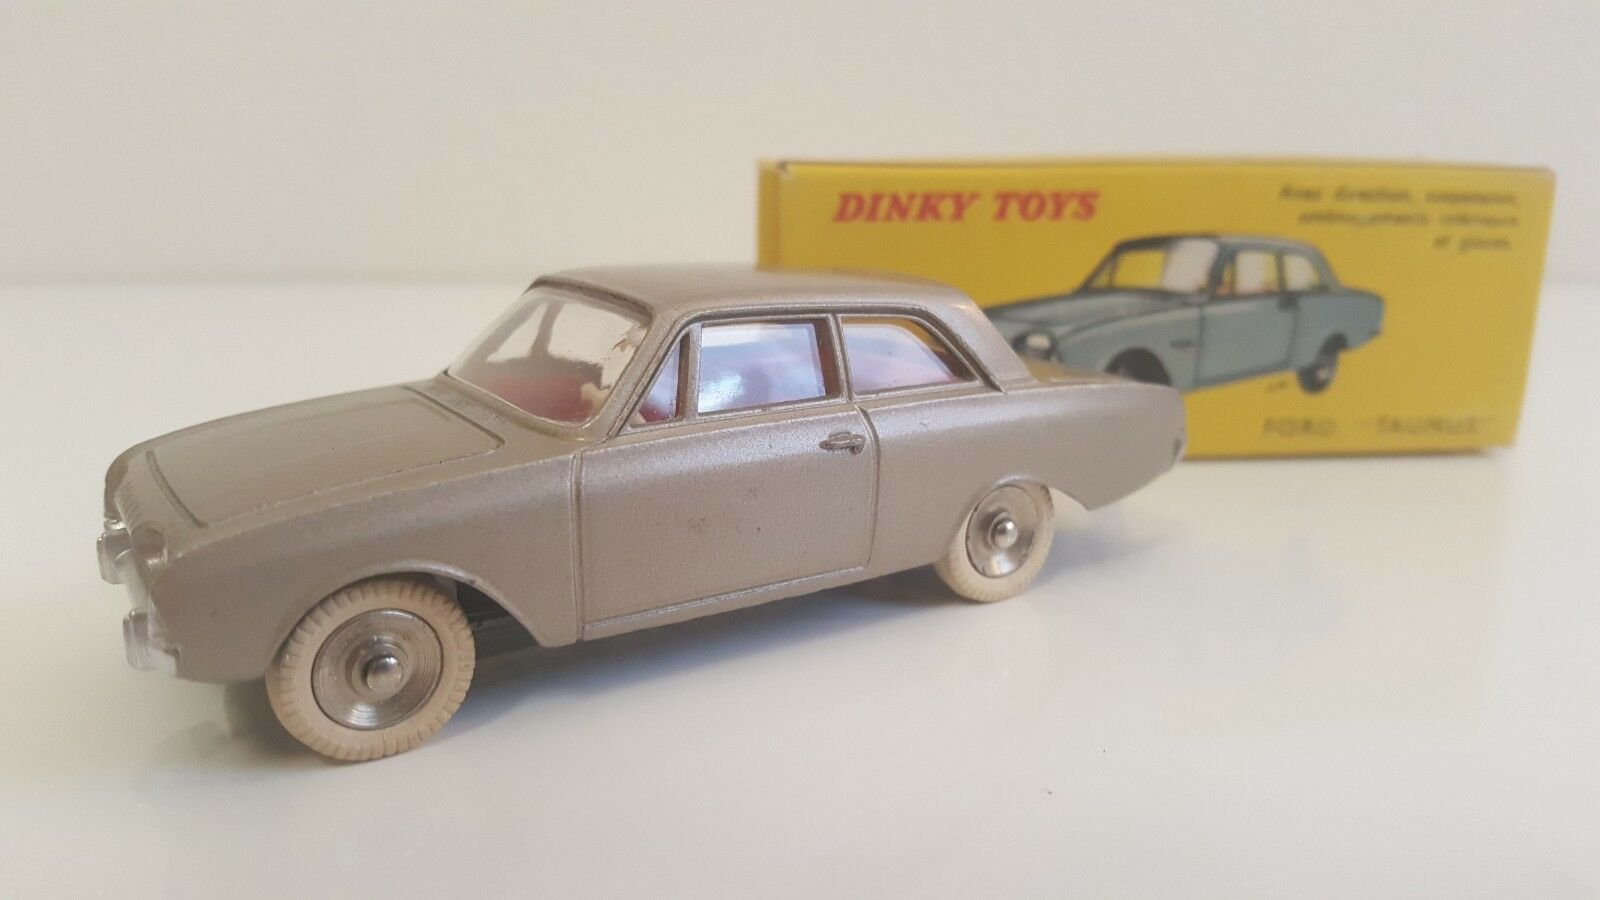 Dinky toys - 559-ford taunus in B.O. (tires ribbed, anodized chassis) vn mib